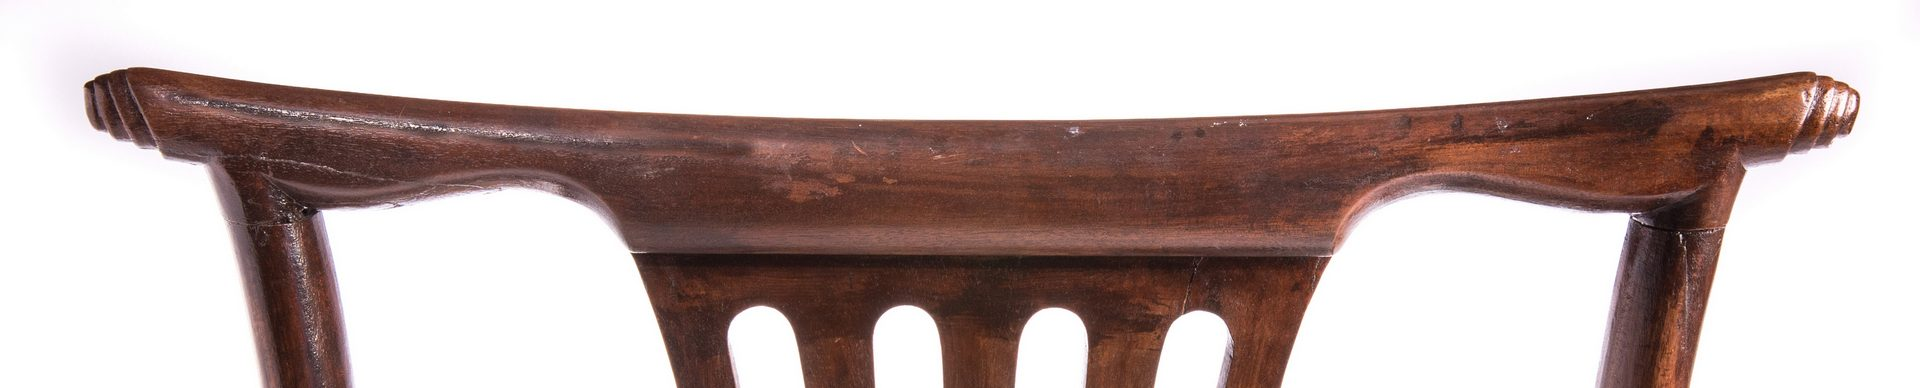 Lot 99: Two 18th c. Chippendale Chairs